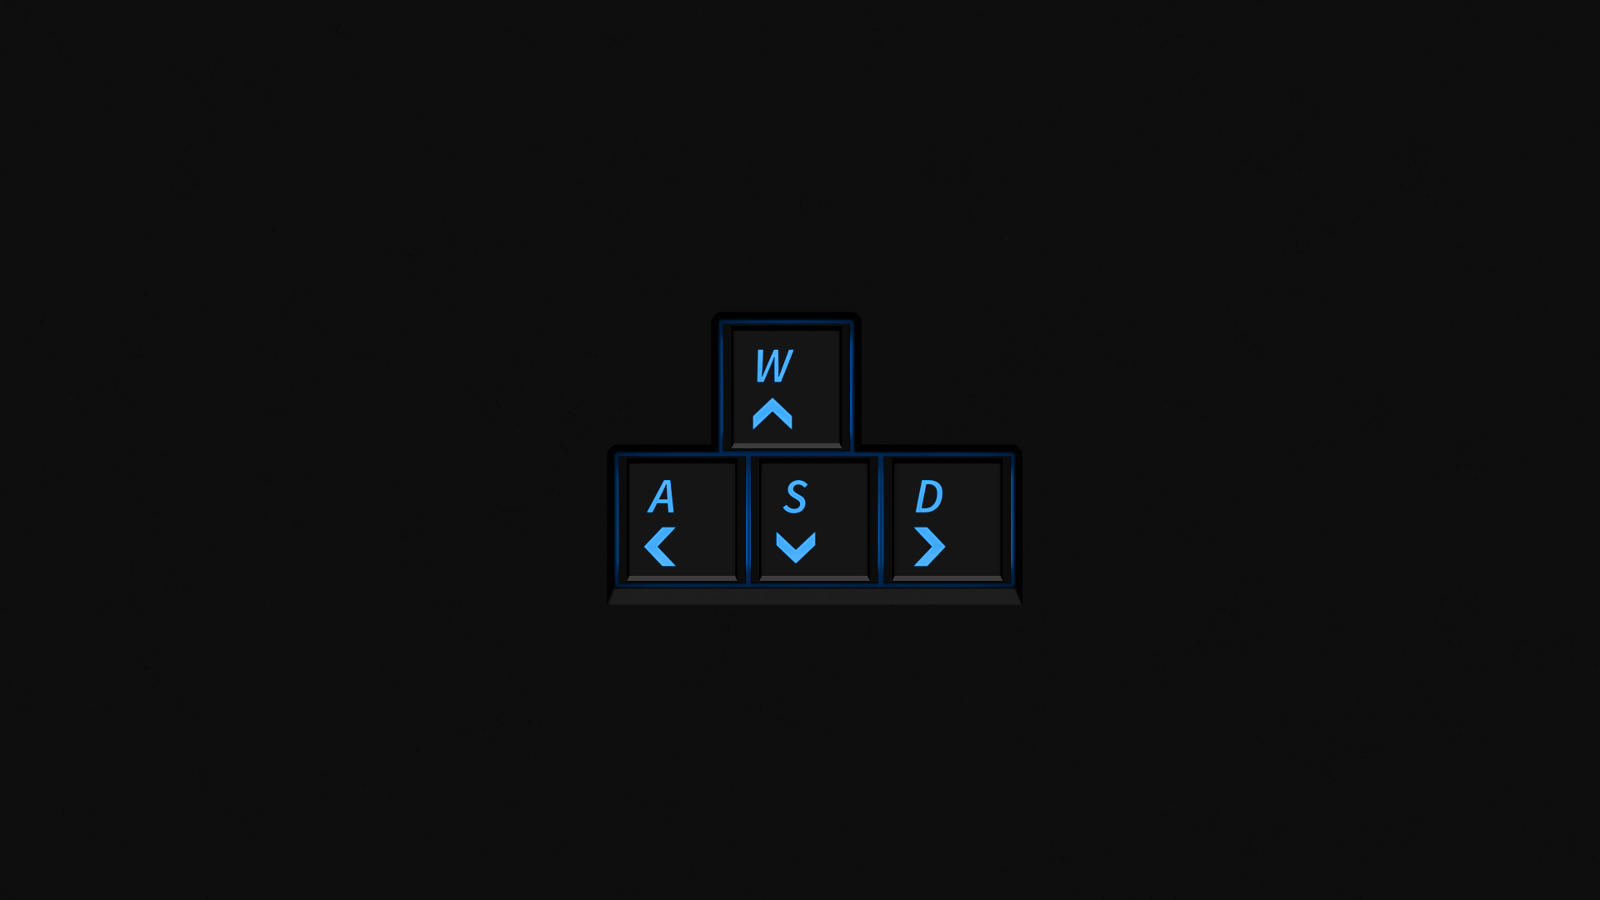 https://s3.amazonaws.com/null-src/images/posts/clevo-p-series-wasd-wallpapers/ClevoWASDLightBlue_1600.png